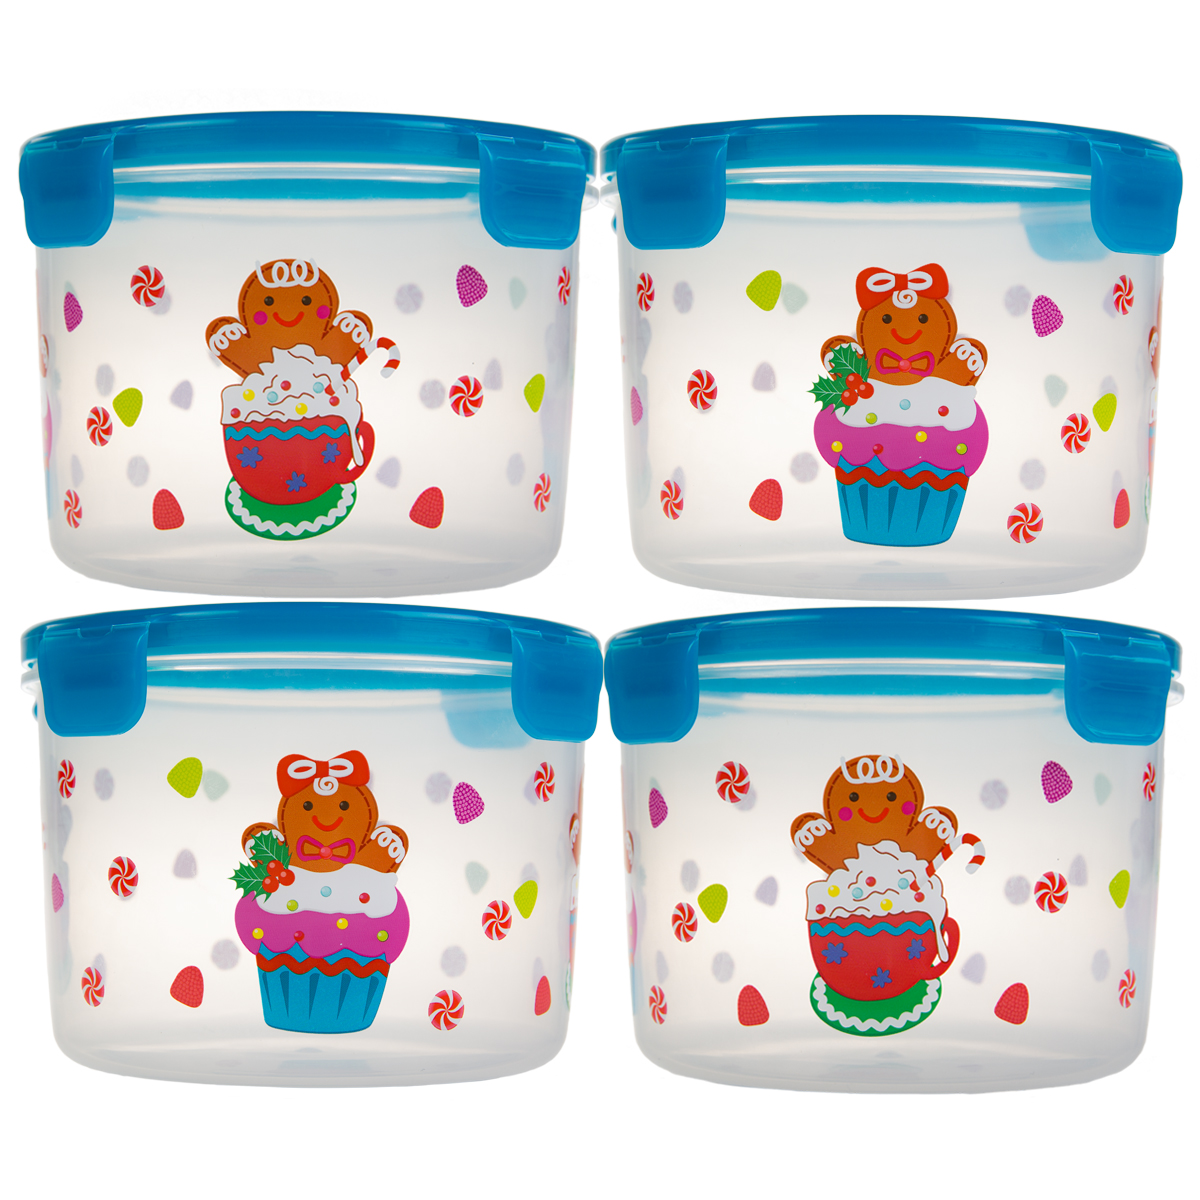 8pc Lock Lock Holiday Plastic Food Storage Containers Set in